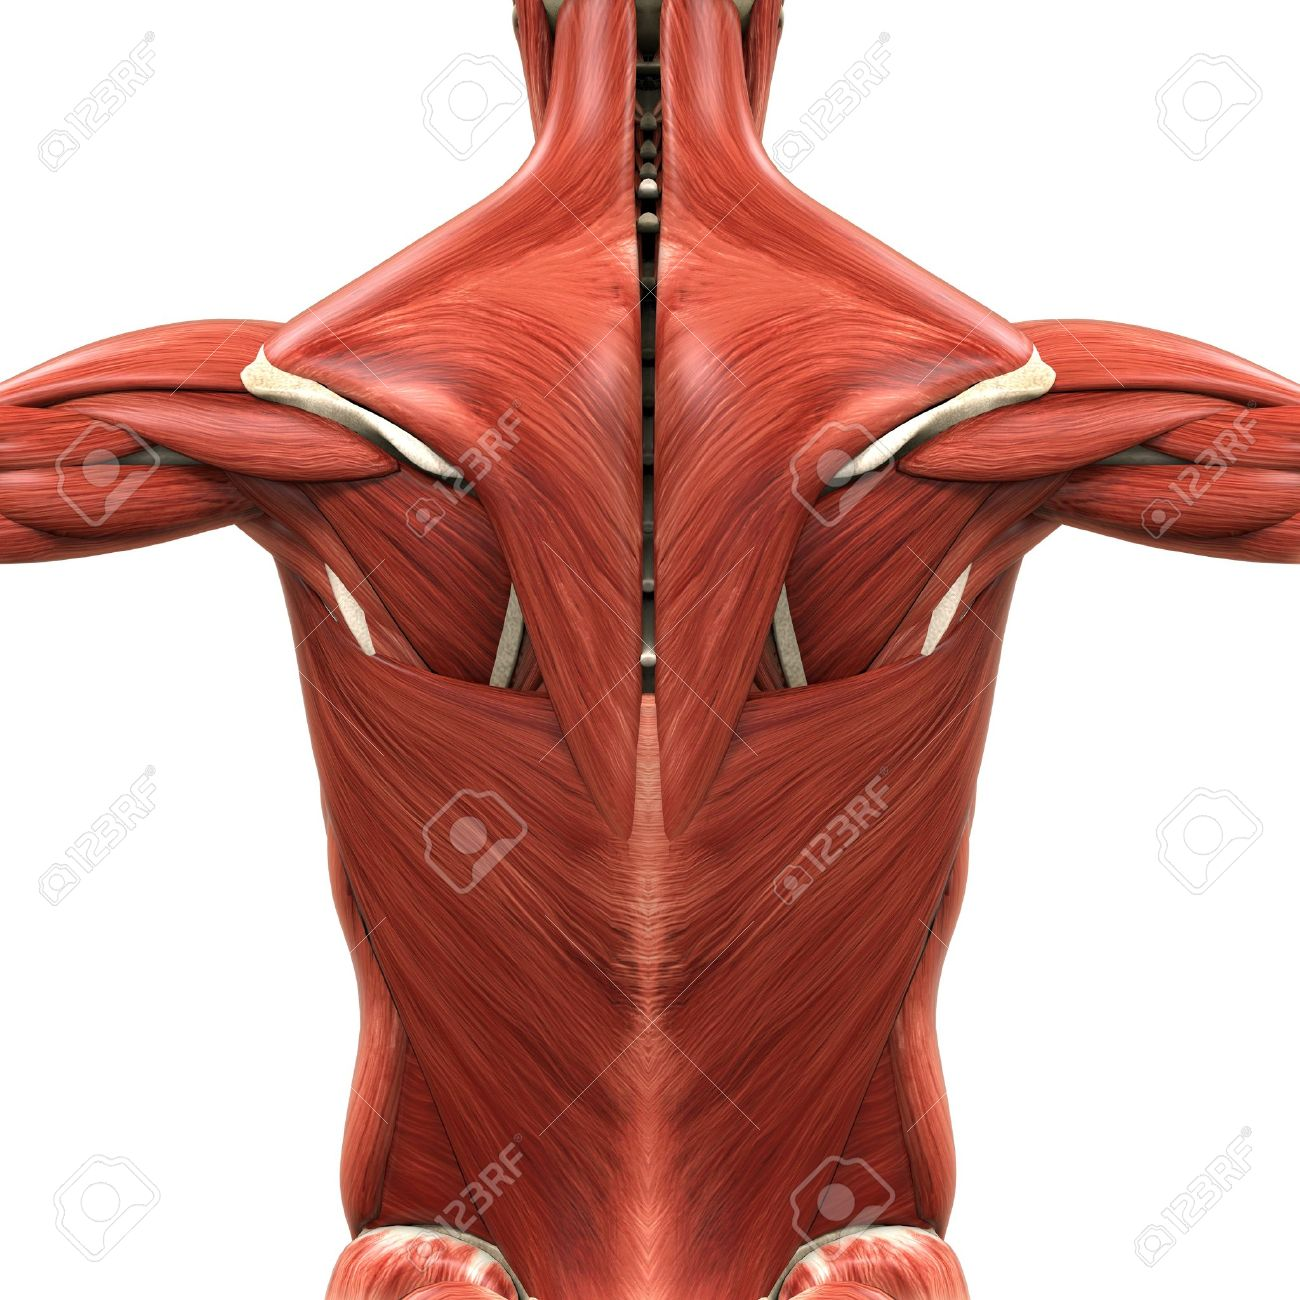 Muscular Anatomy Of The Back Stock Photo Picture And Royalty Free